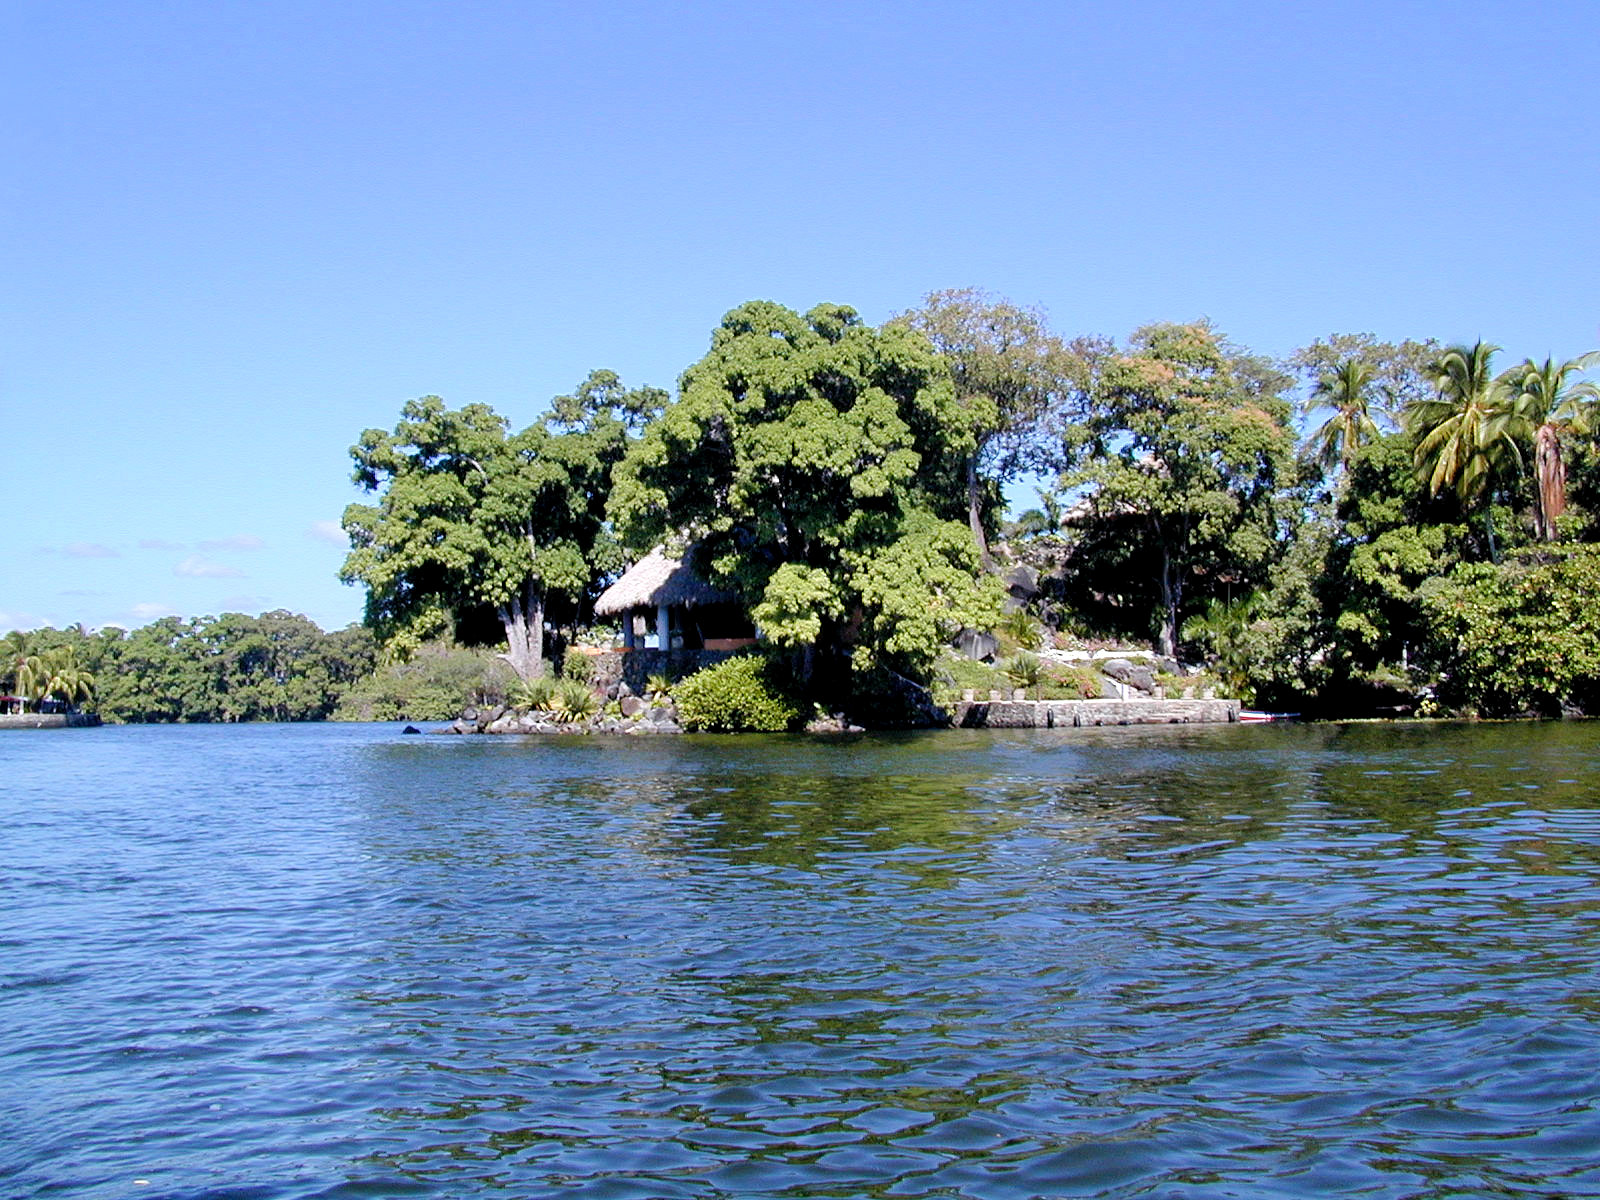 A private island is perfect for a weekend getaway or long-term stay